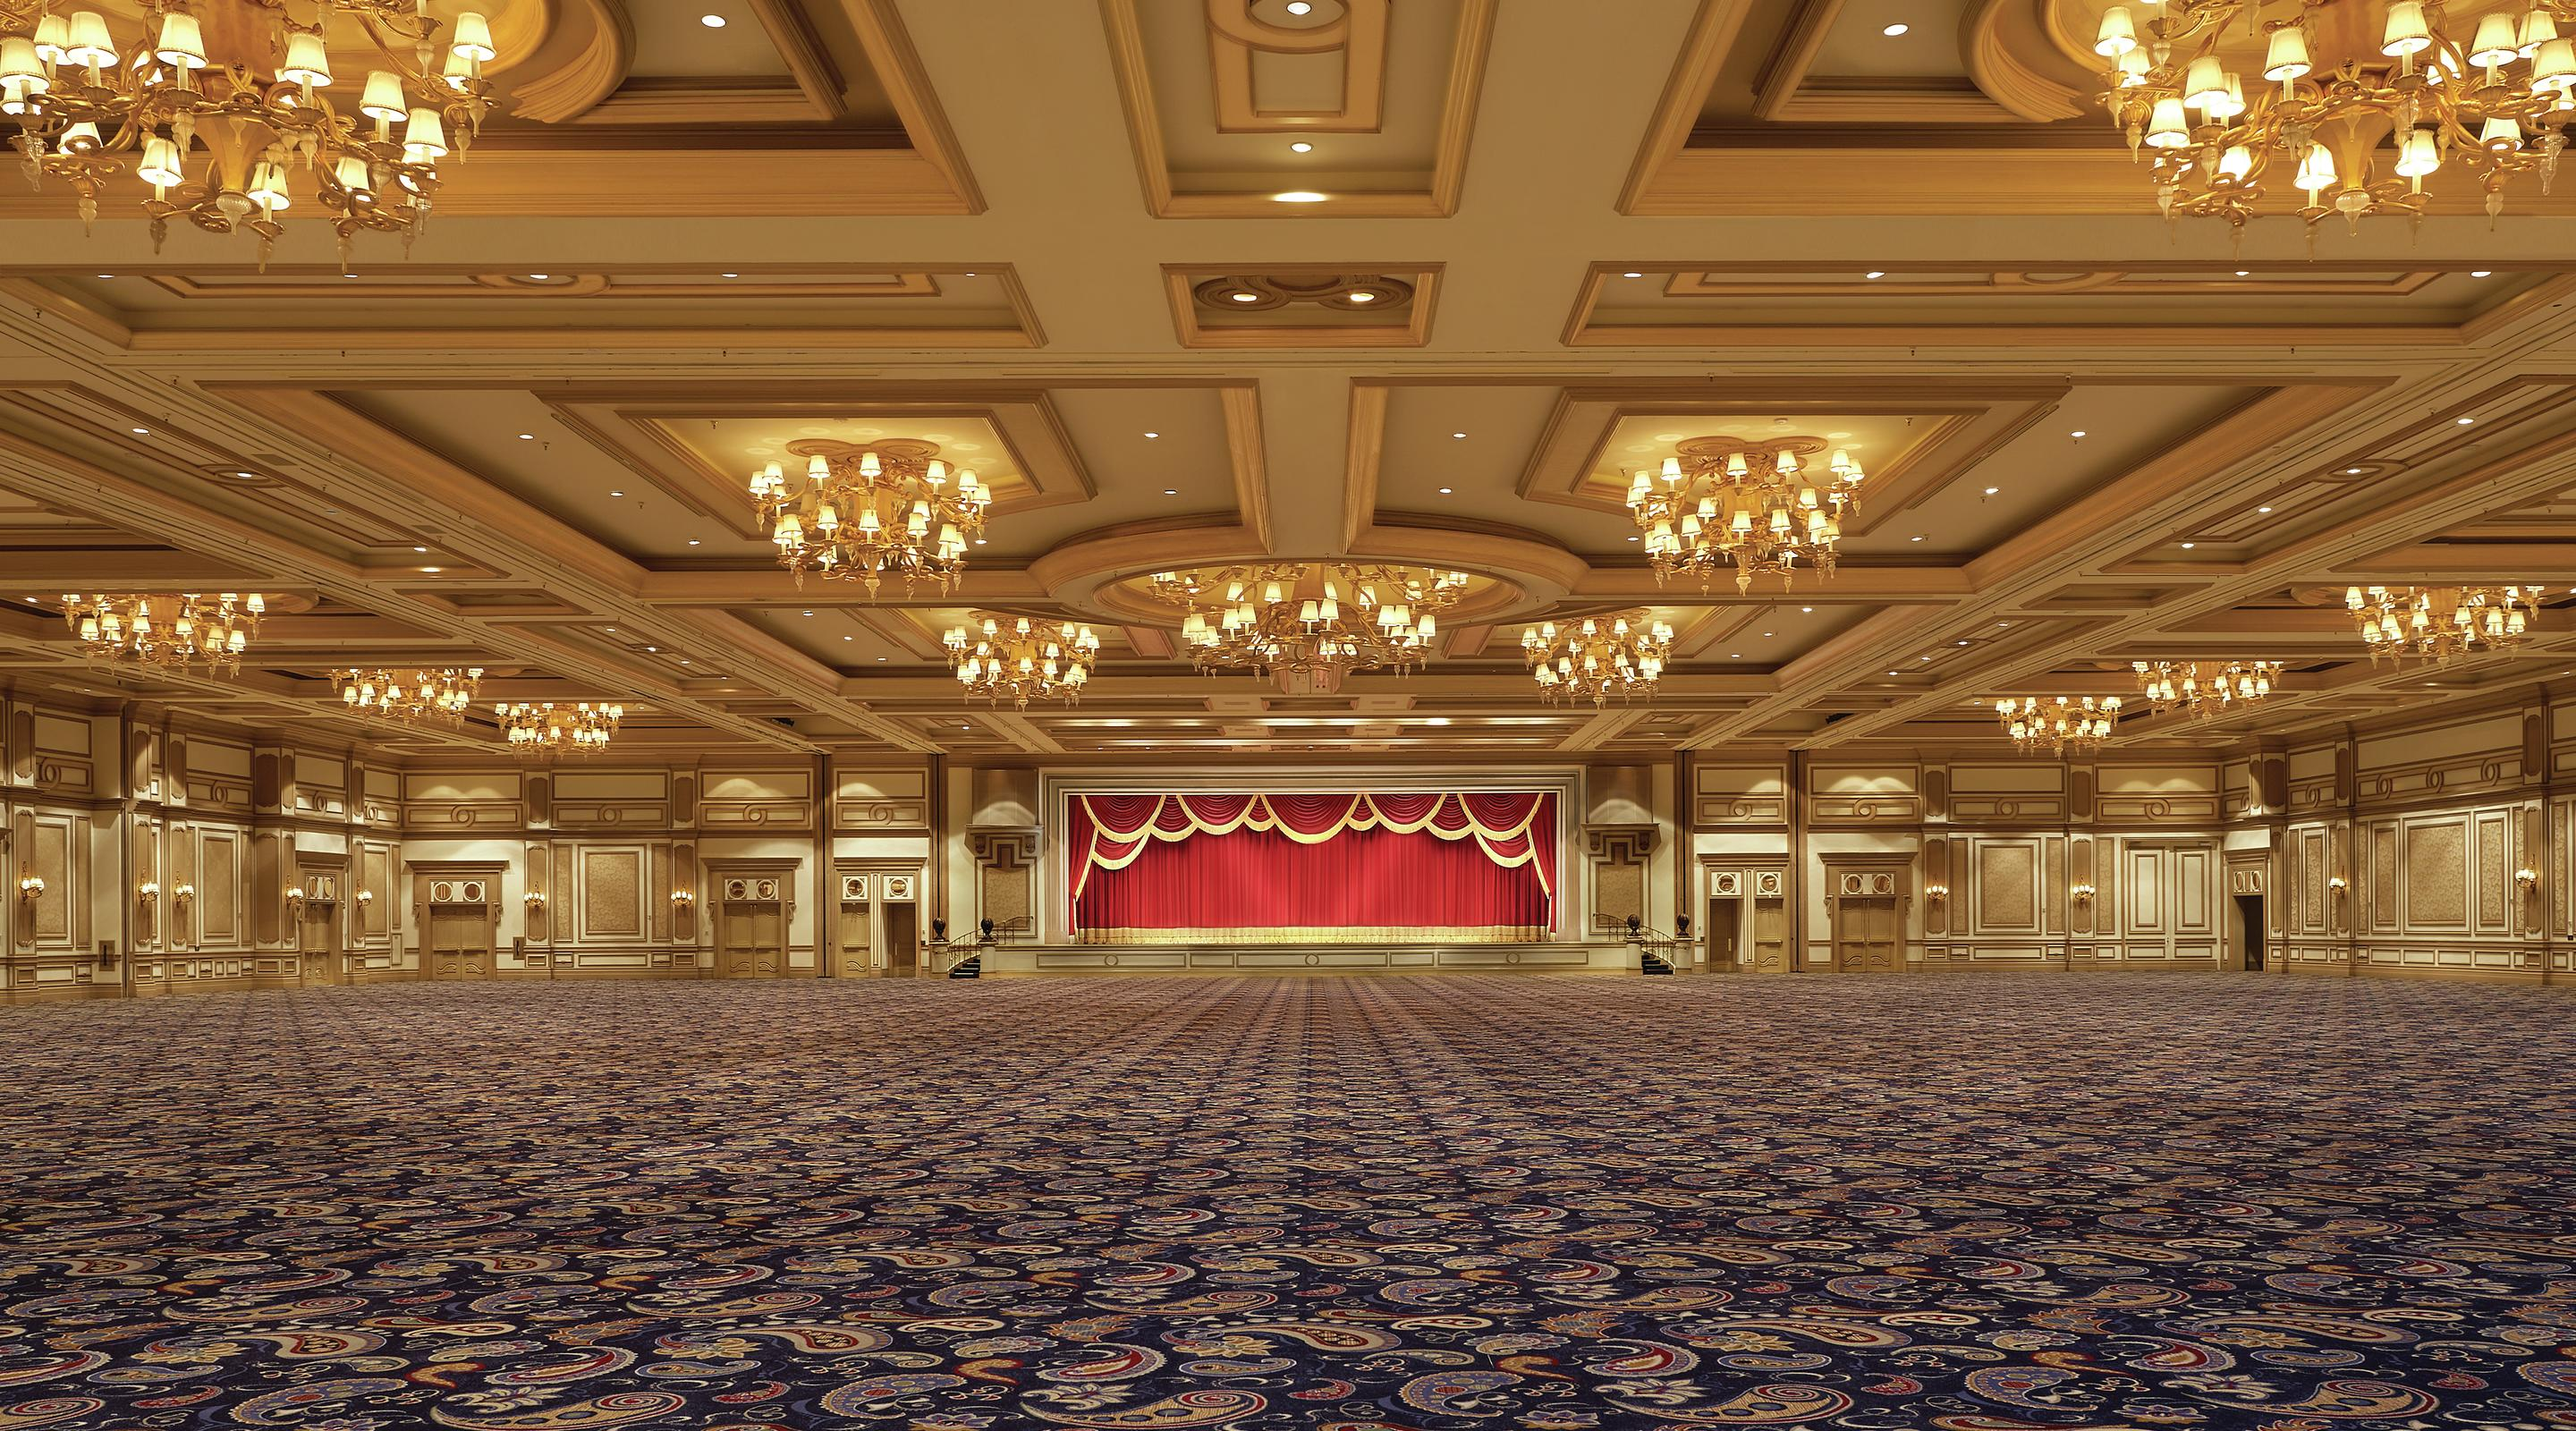 Las Vegas Meeting Rooms & Spaces - Bellagio Hotel & Casino